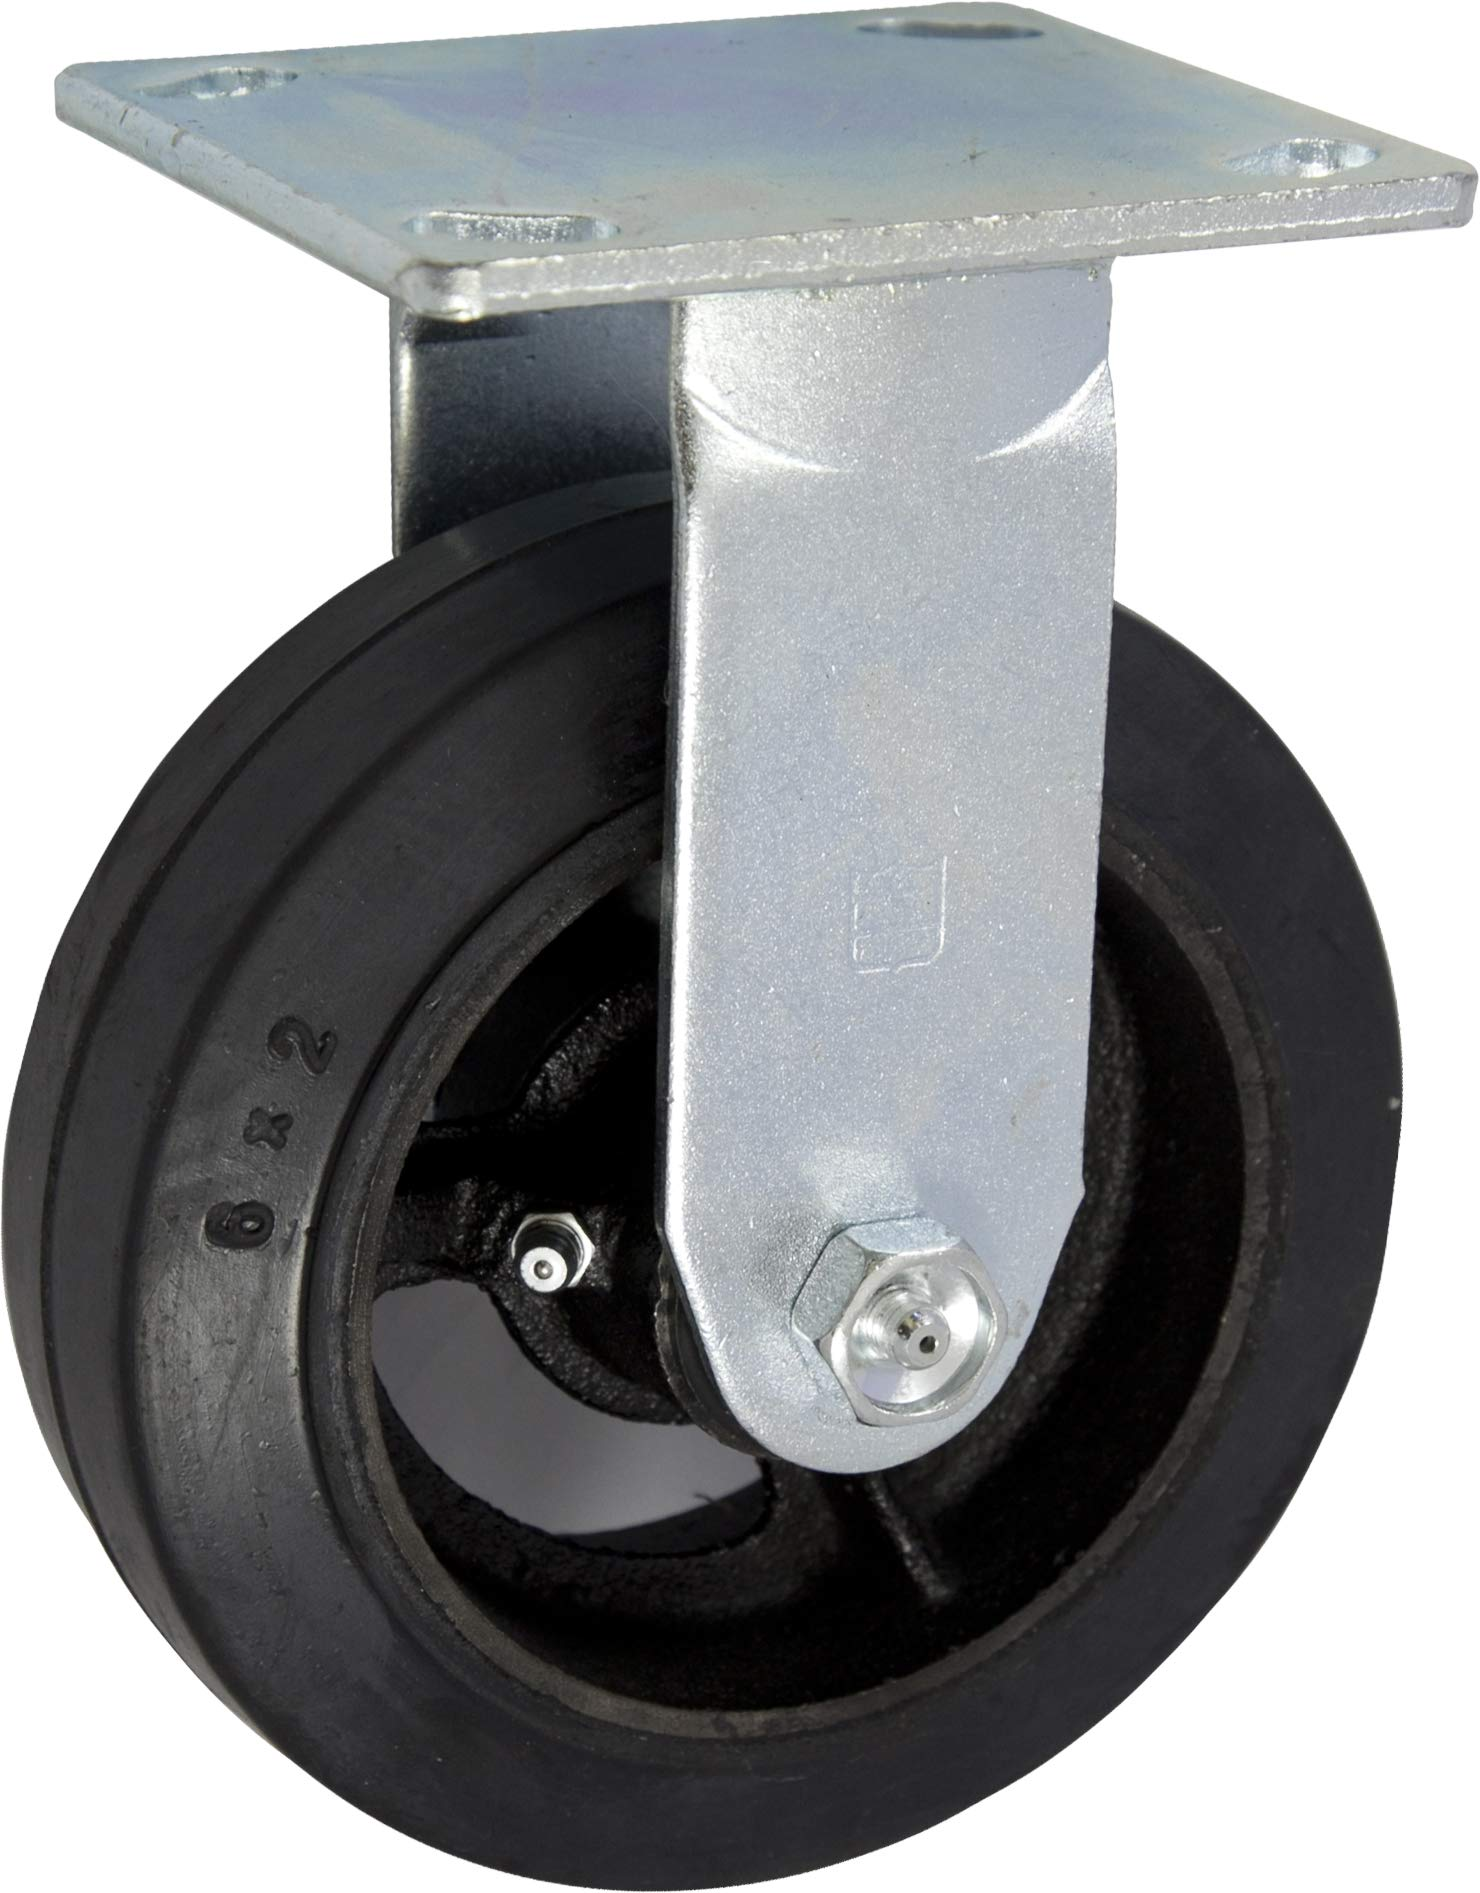 Caster Barn - 6'' x 2'' Rubber on Iron Wheel Medium Duty Industrial Caster - Dumpster & Trash Container Fixed Caster